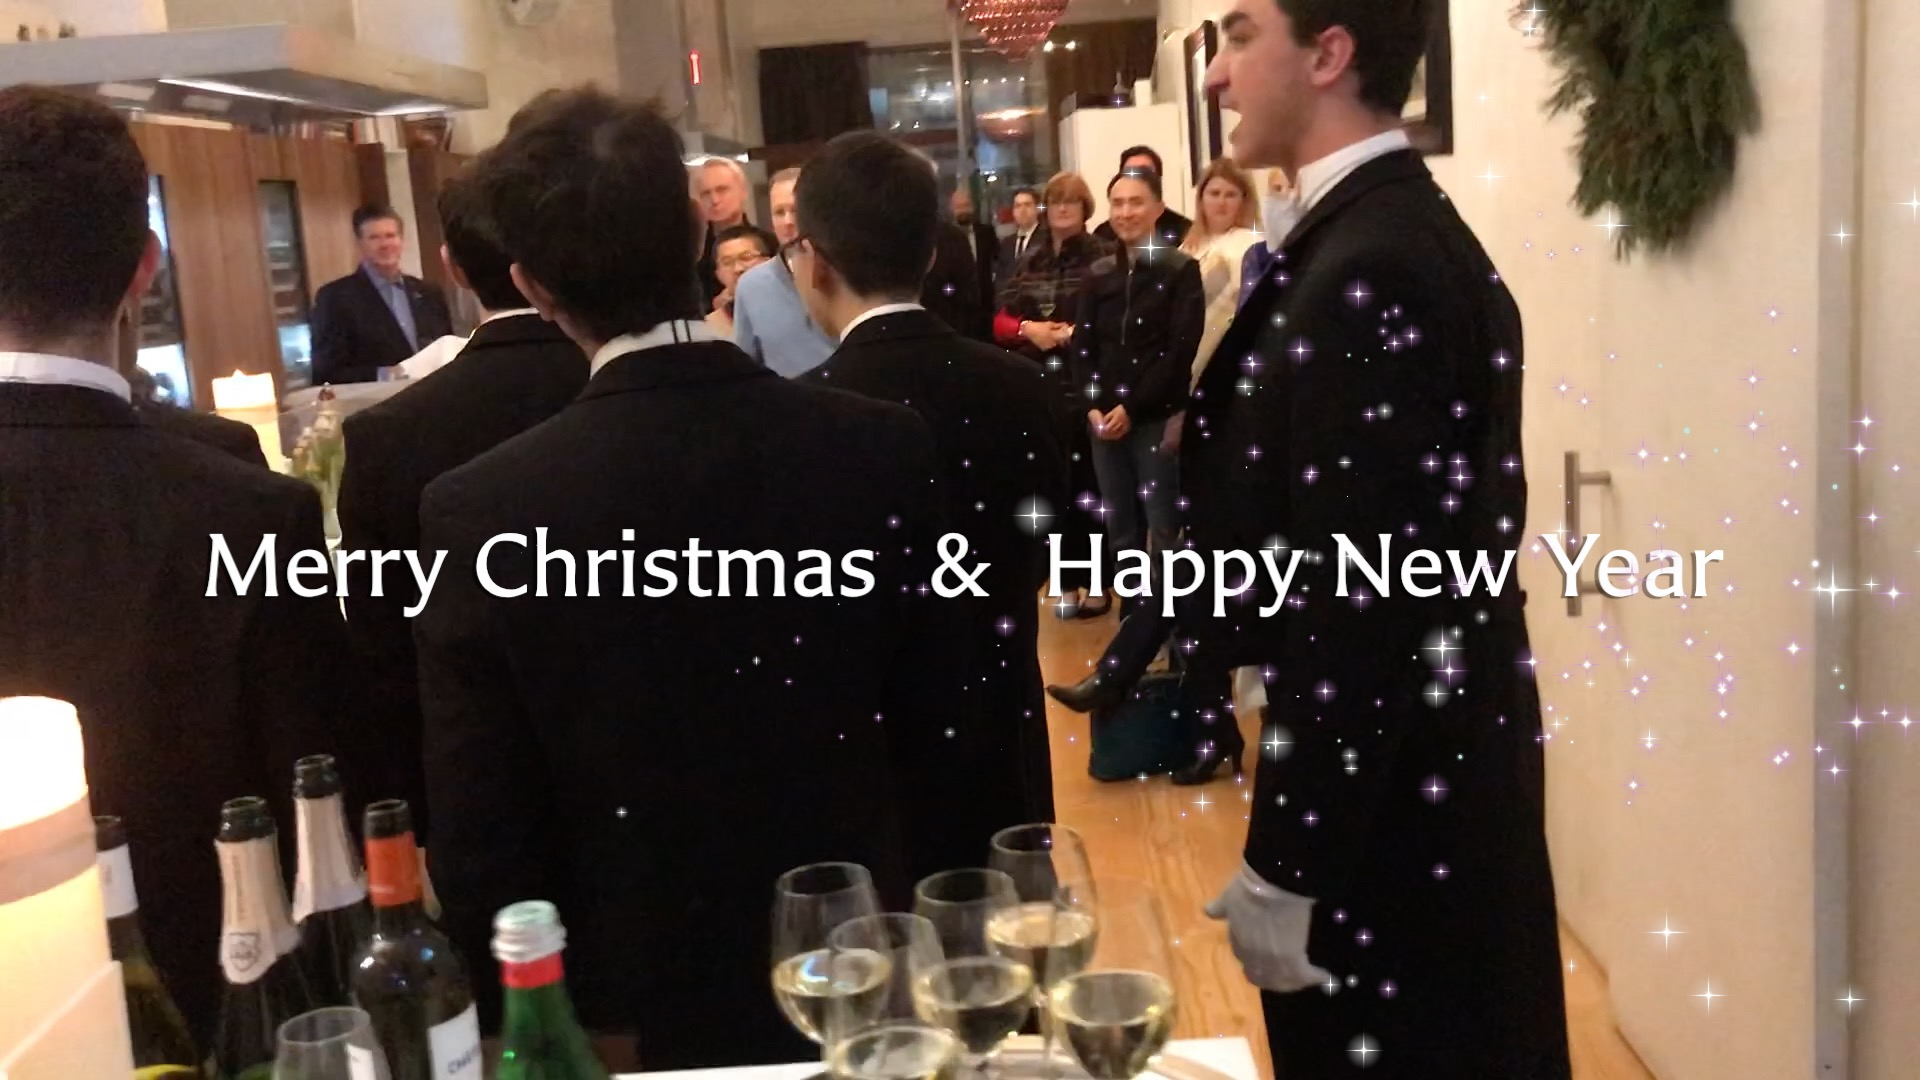 Merry Christmas and Happy New Year from Bouley at Home